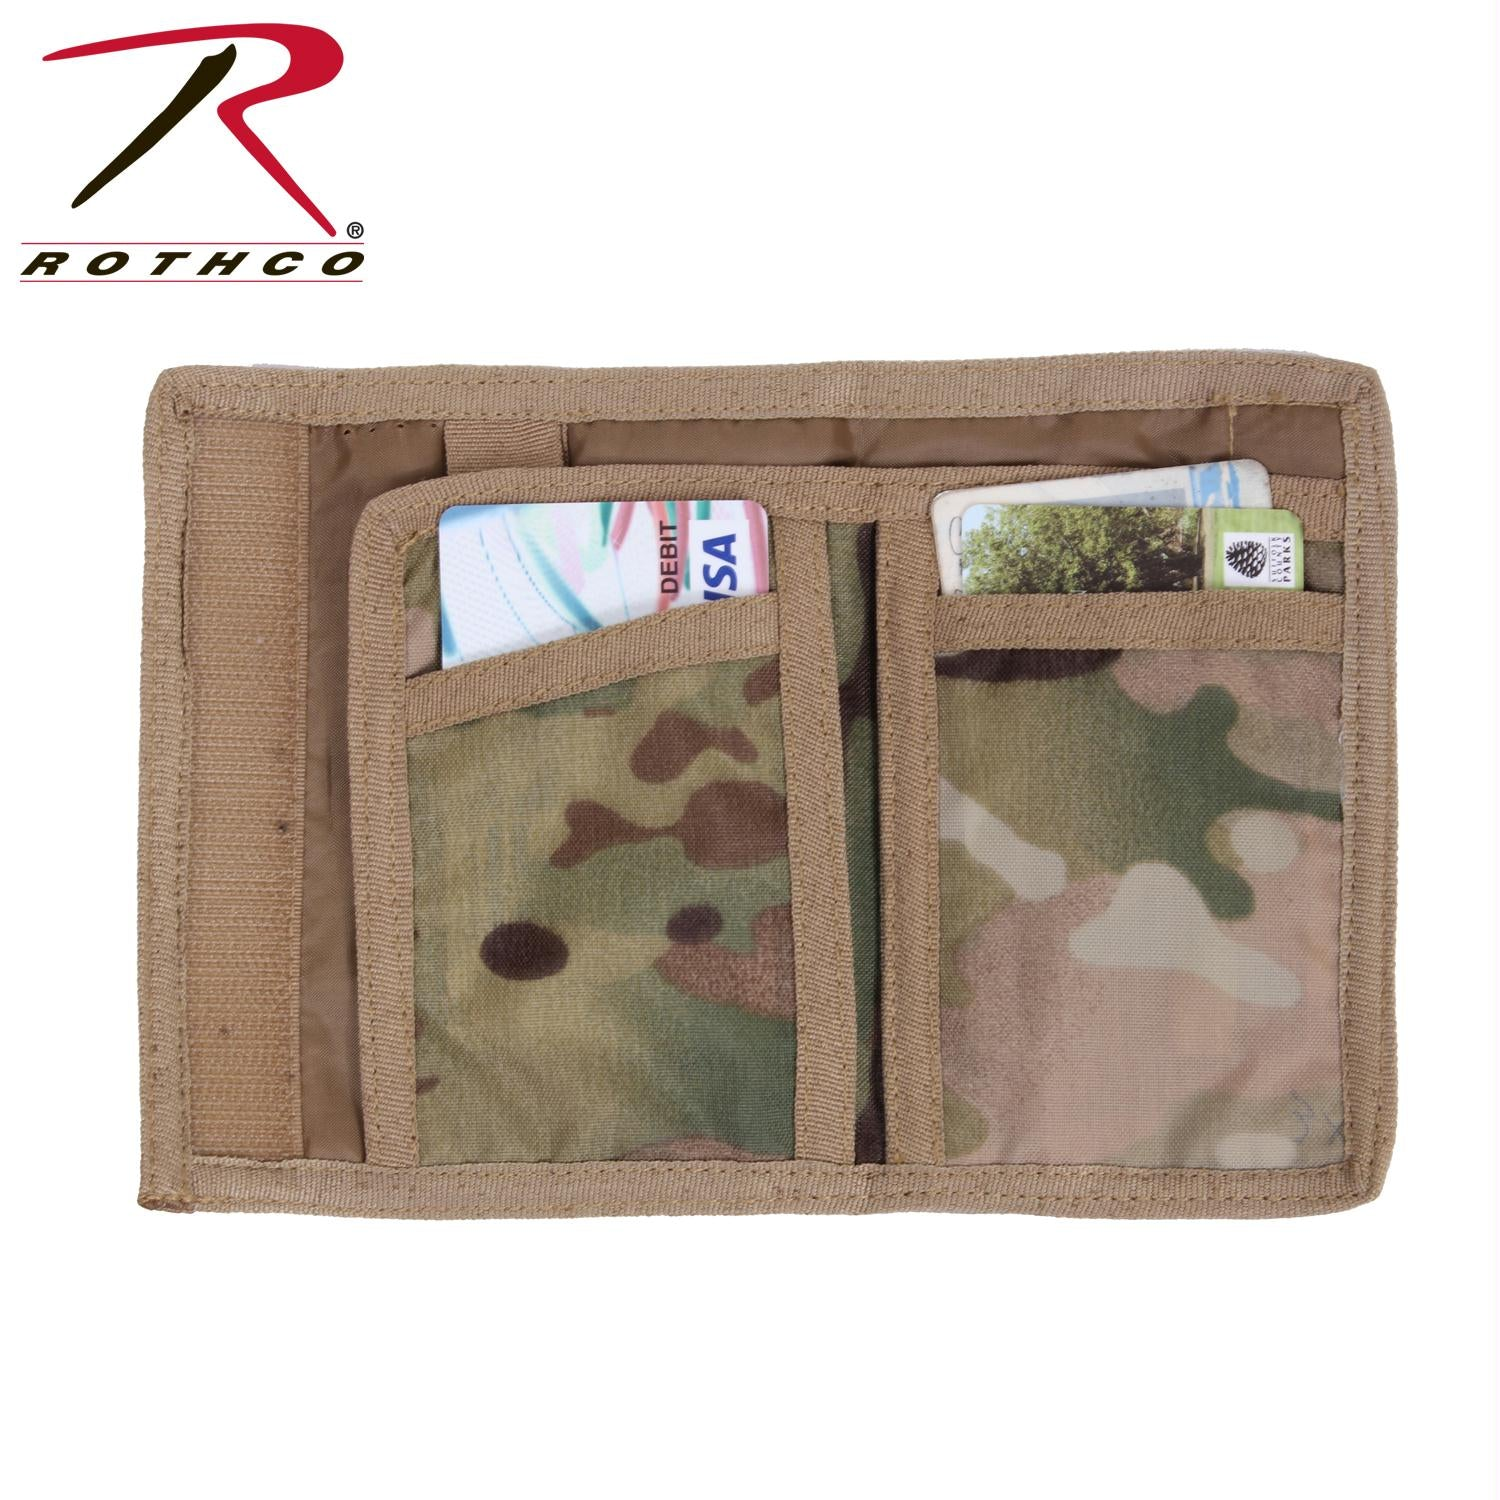 Rothco Commando Wallet